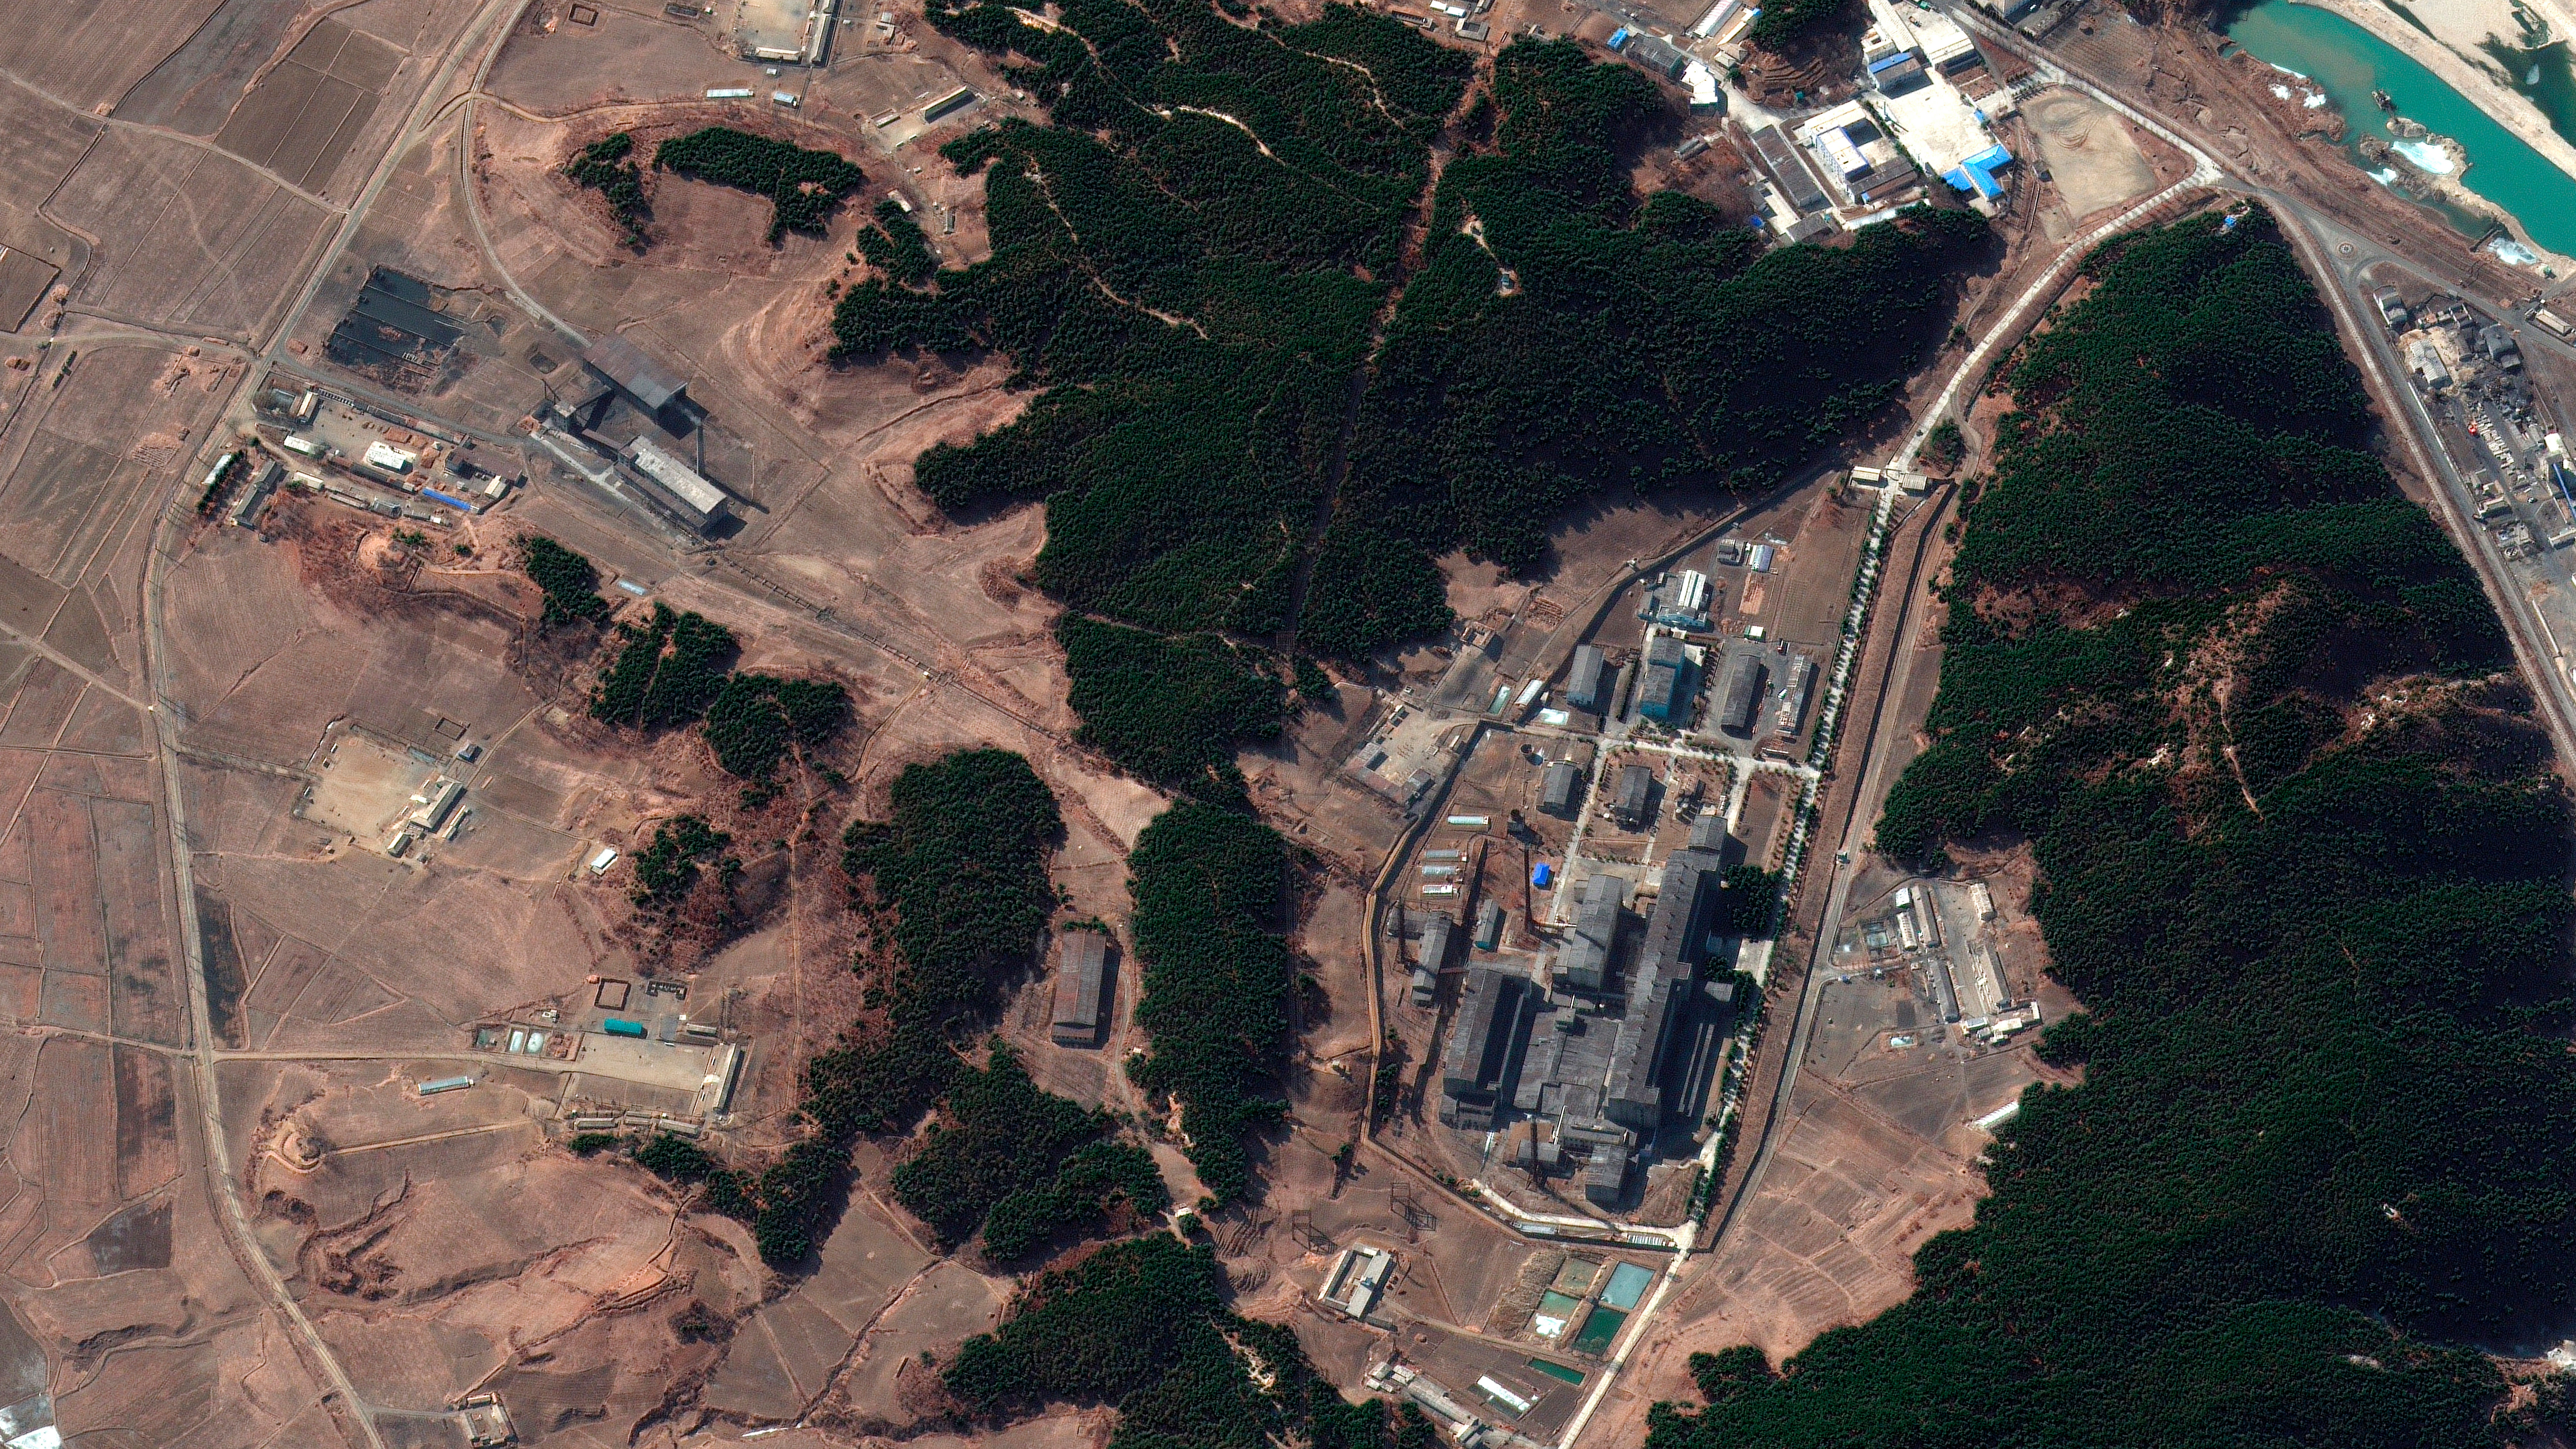 A satellite image taken in March 2021 and provided by Maxar Technologies shows a steam plant, left, and North Korea's main atomic complex, right, in Yongbyon, North Korea. Smoke was observed emanating from the plant's smokestack.